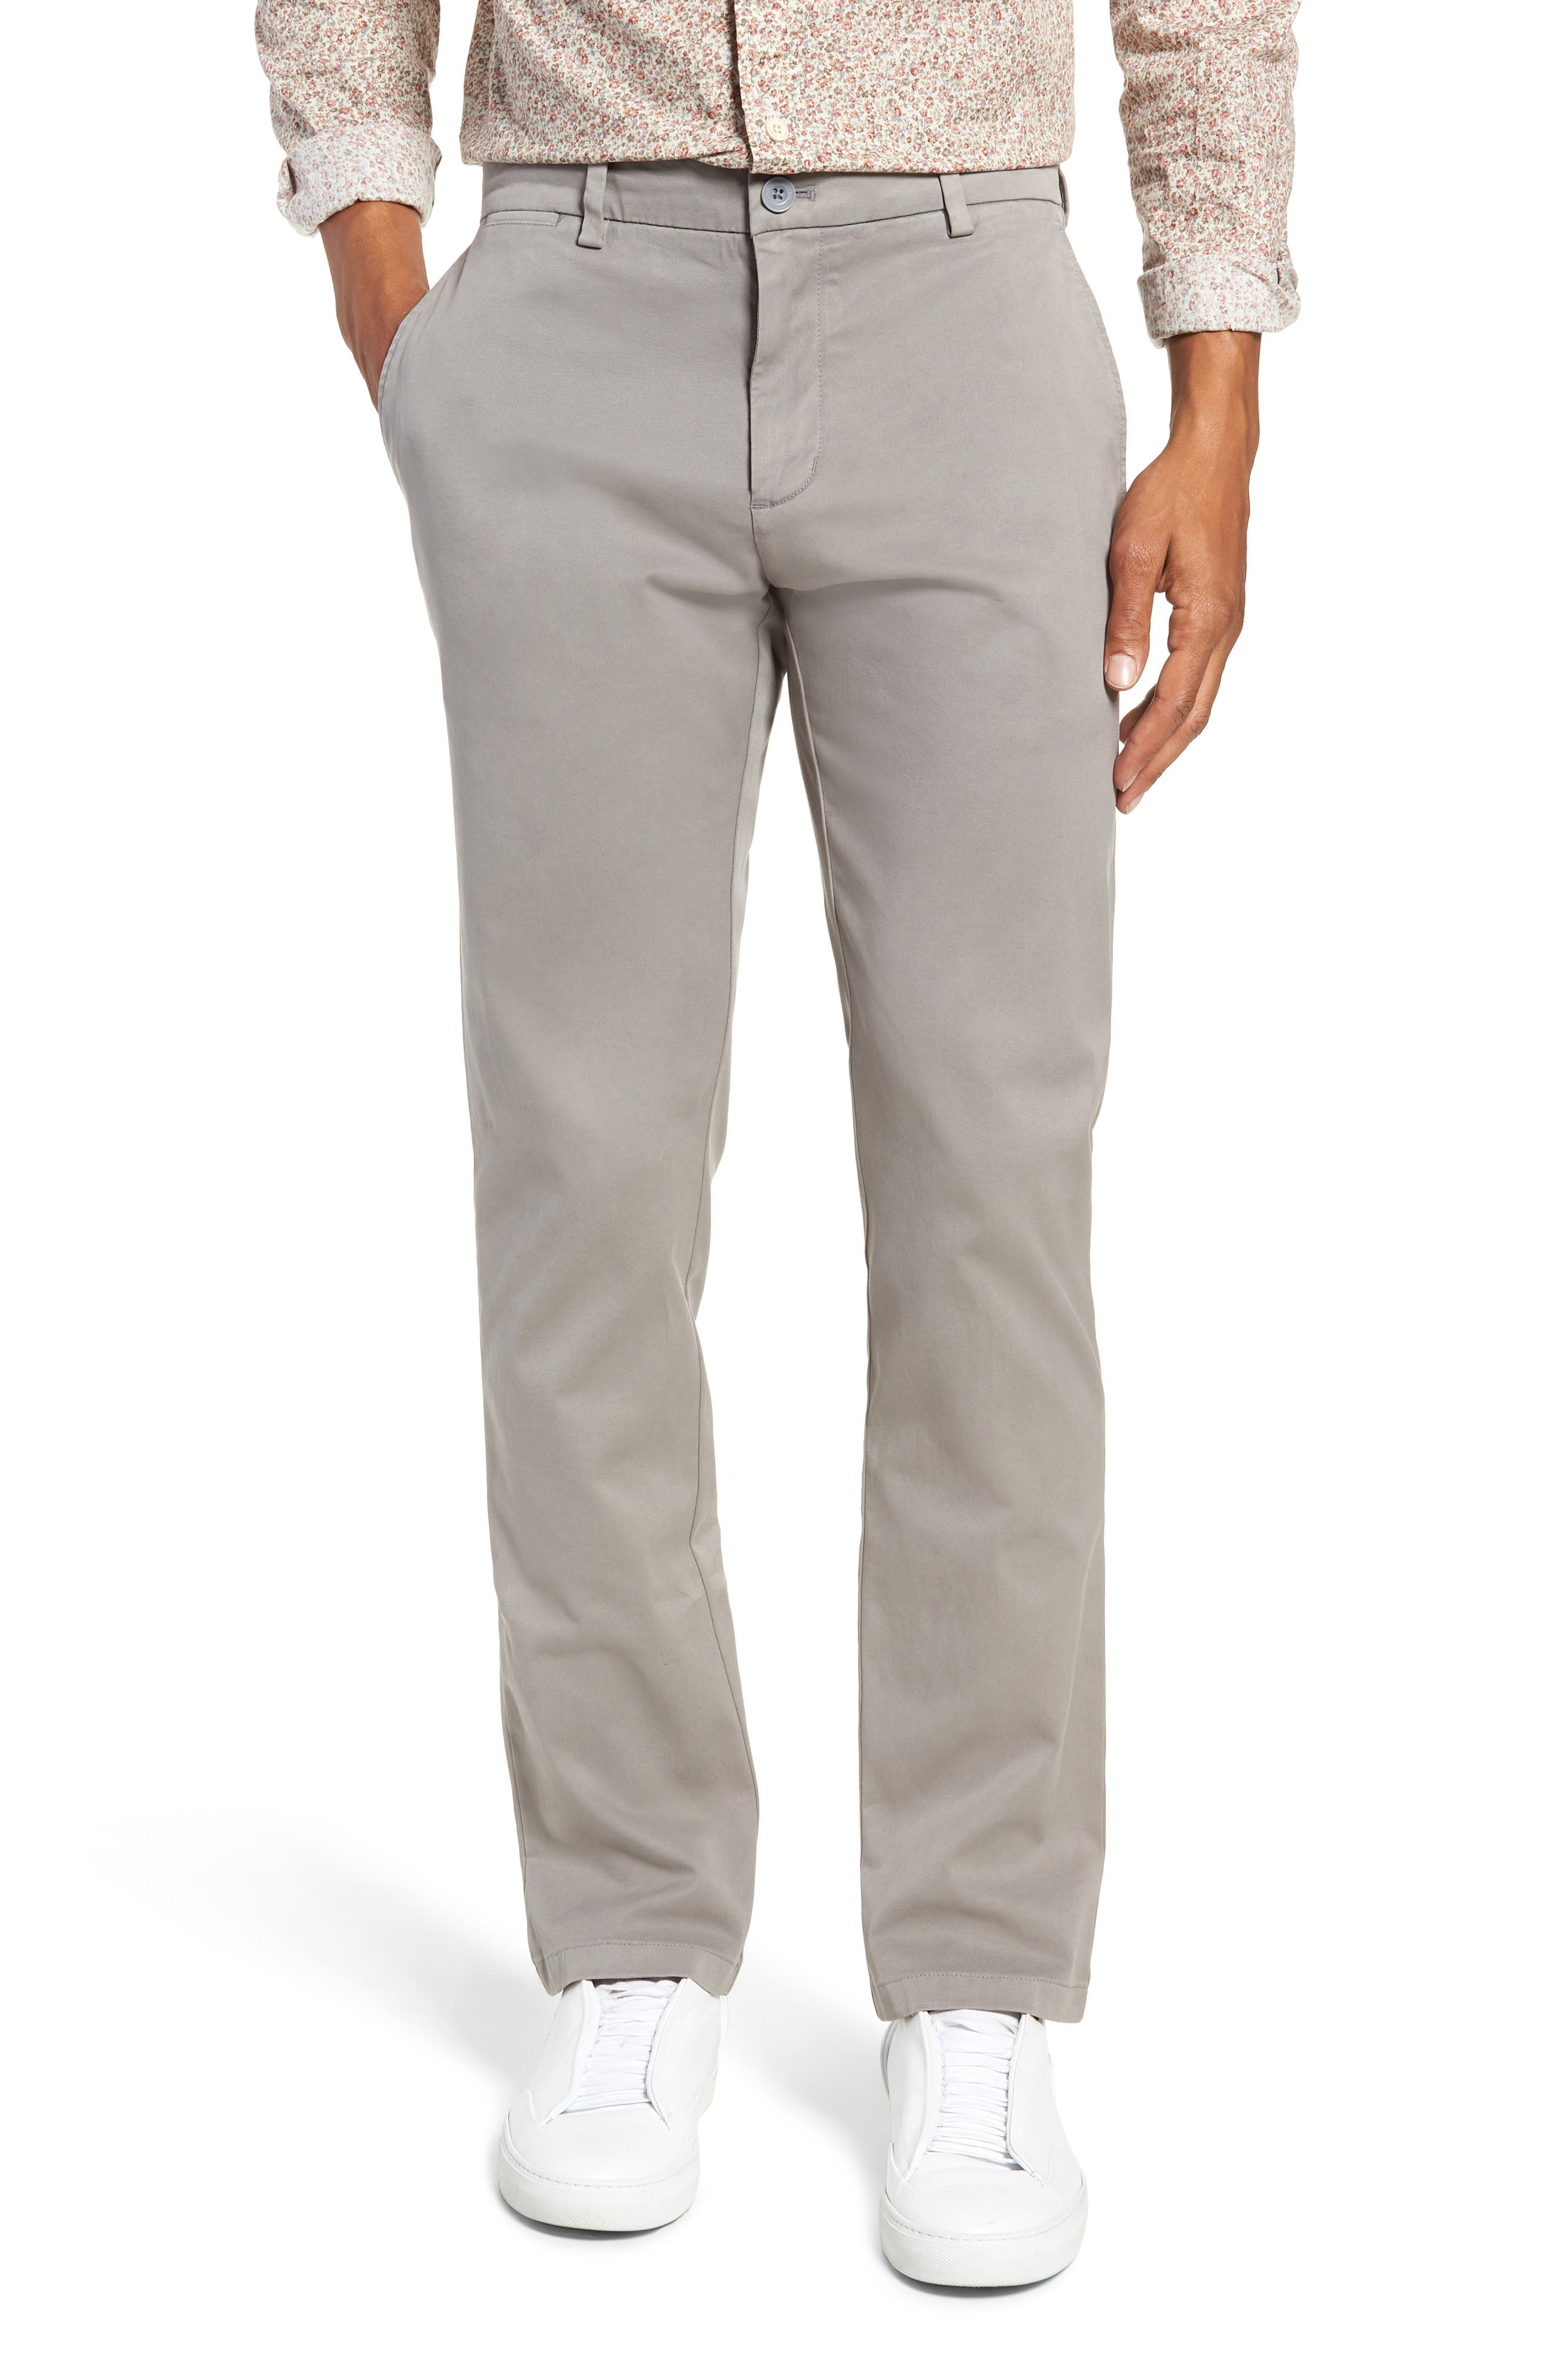 Stretch Slim Fit Pants,                             Main thumbnail 1, color,                             ANCHOR GREY